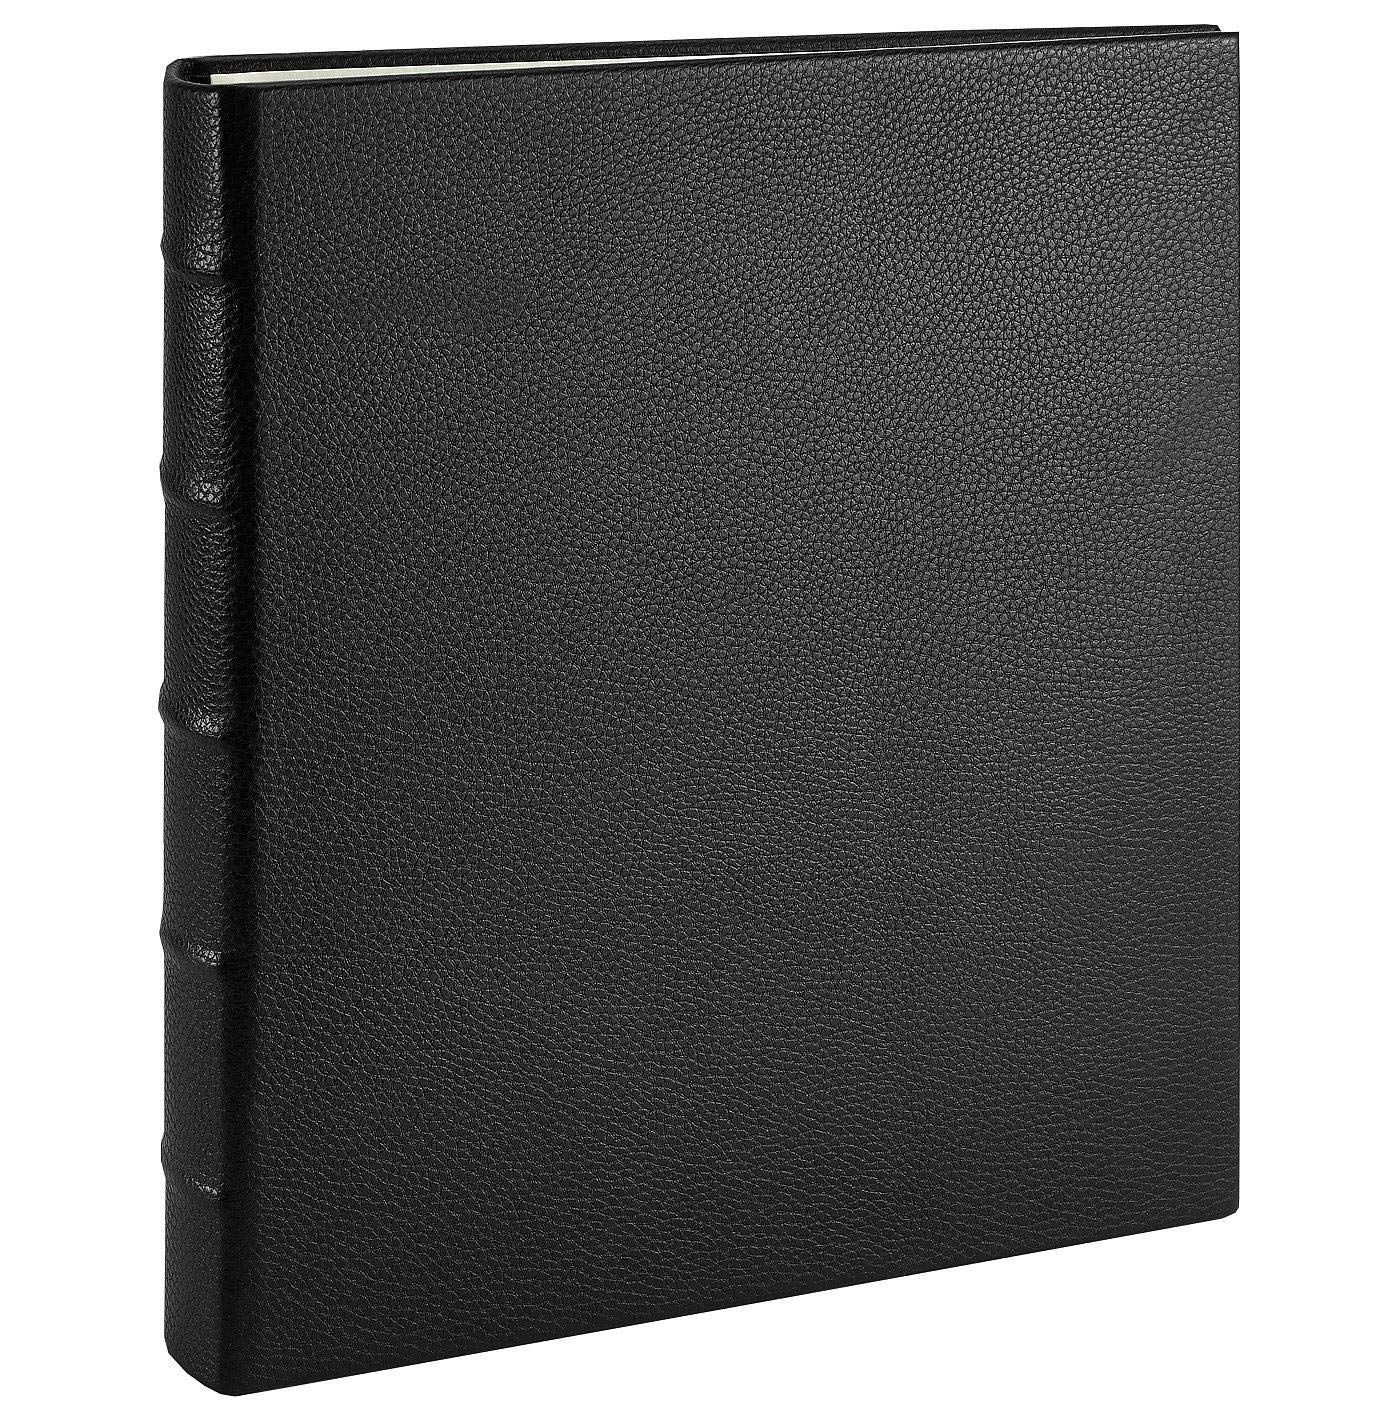 Post Impressions™ System standard 3-ring Black Pebble-Grain Eco-Leather binder unfilled - 8.5x11